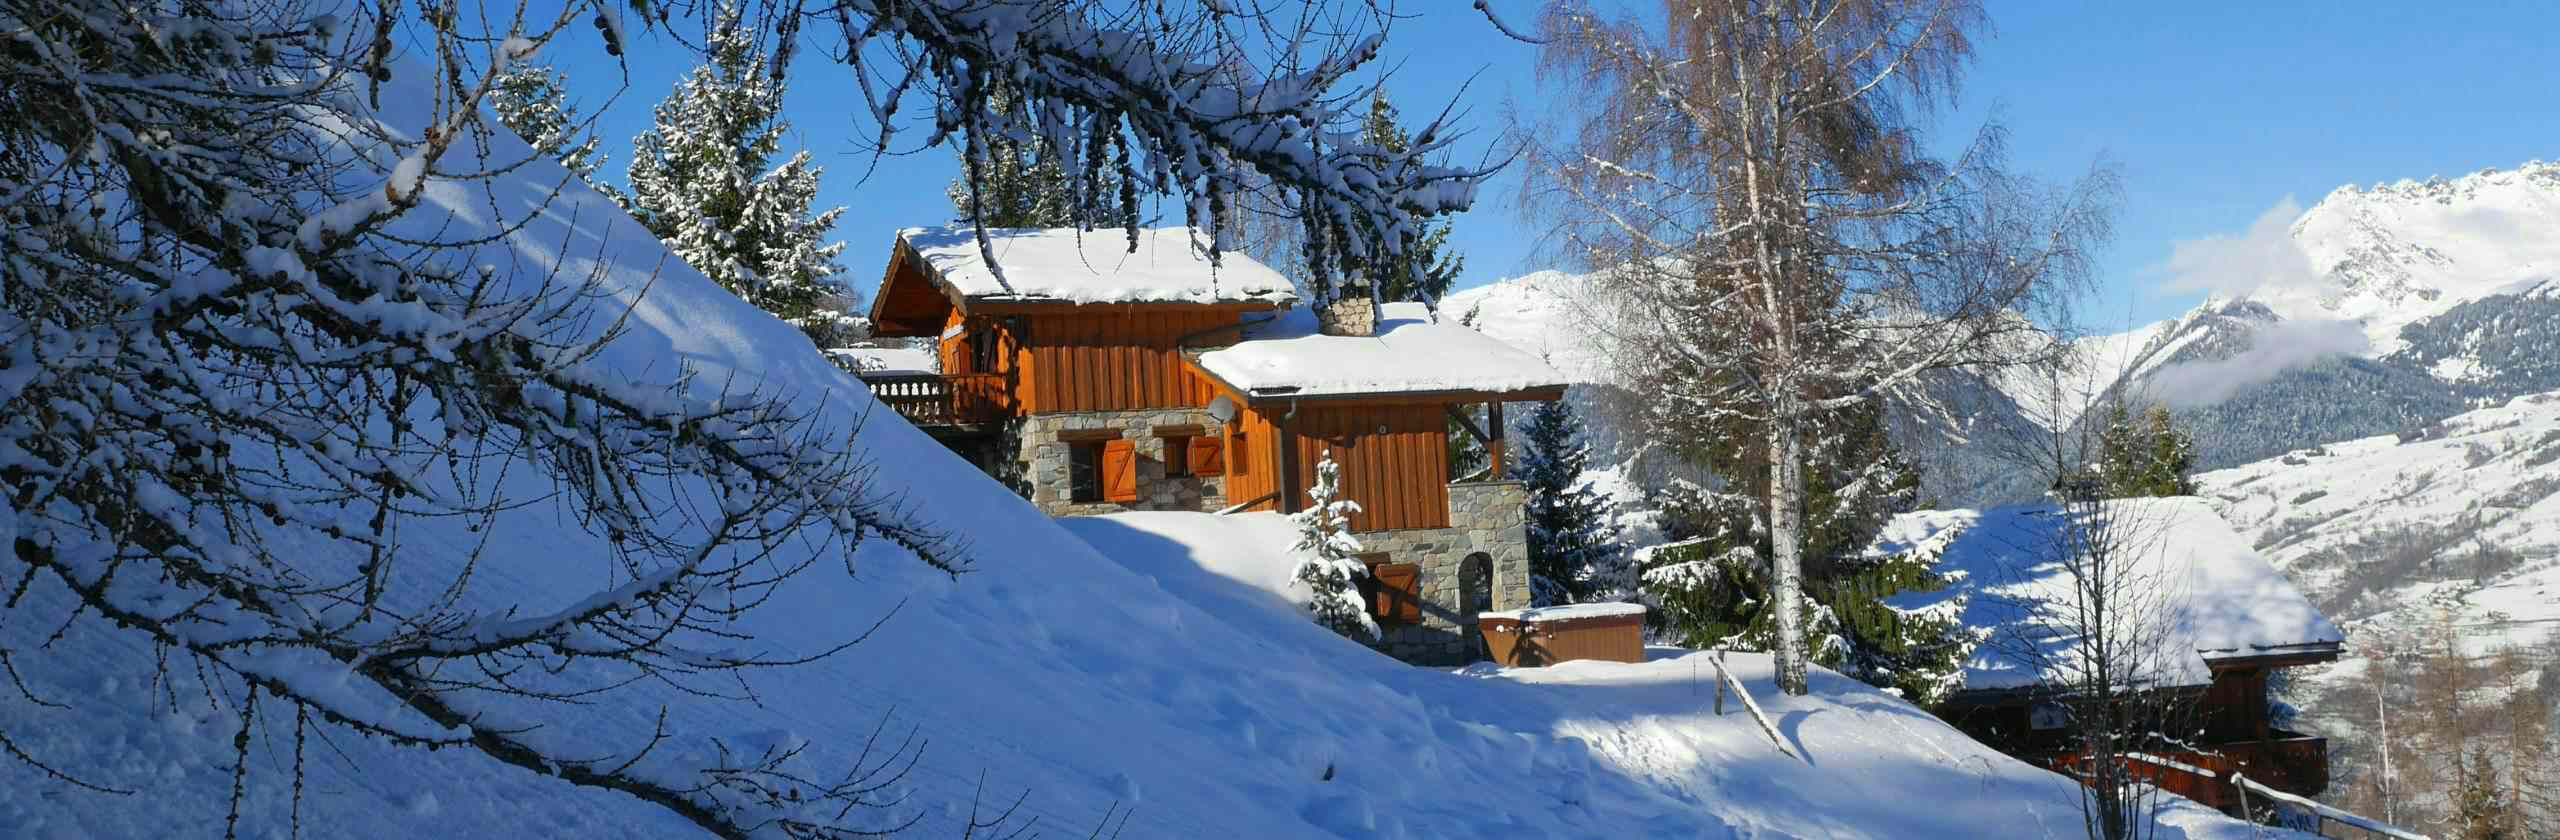 External view of Chalet Pisteside and Chalet Chamois in La Plagne